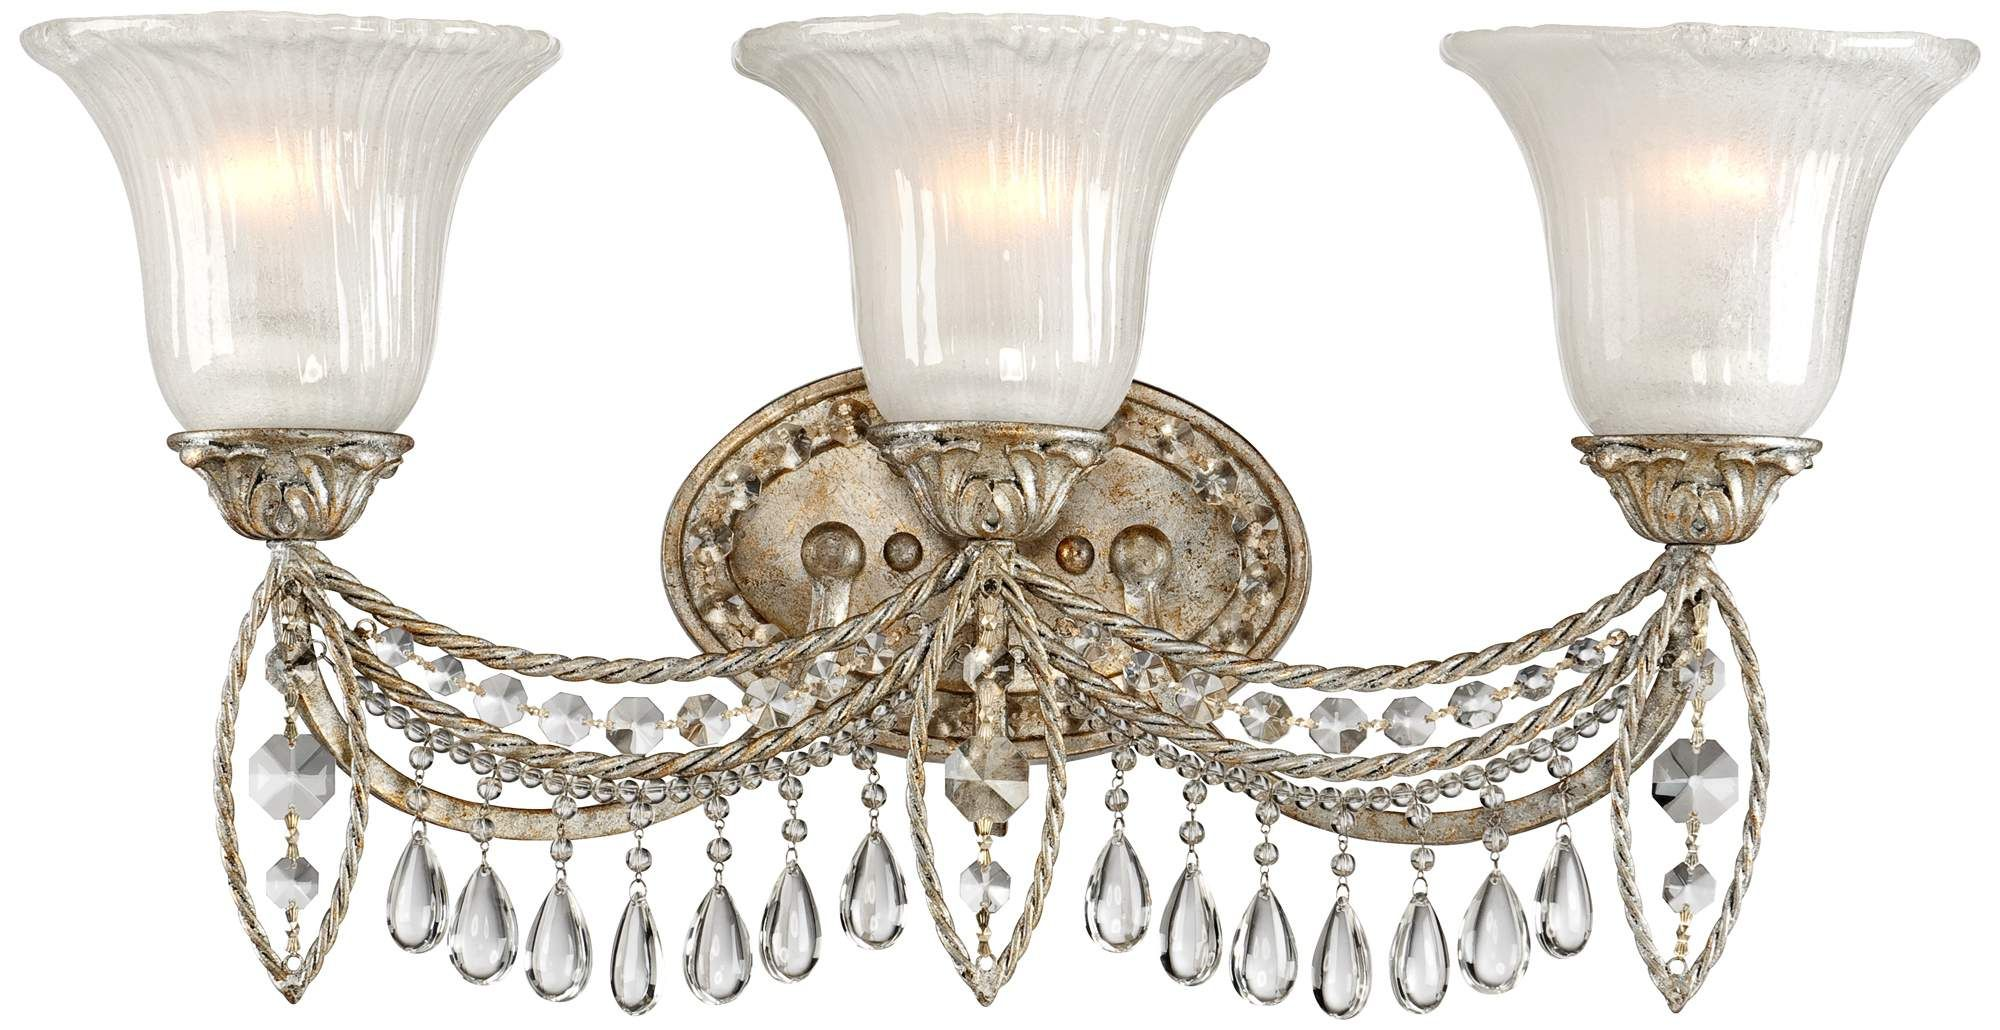 Antique silver and crystal 3 light bath fixture a home of the past - Bathroom chandeliers crystal ...